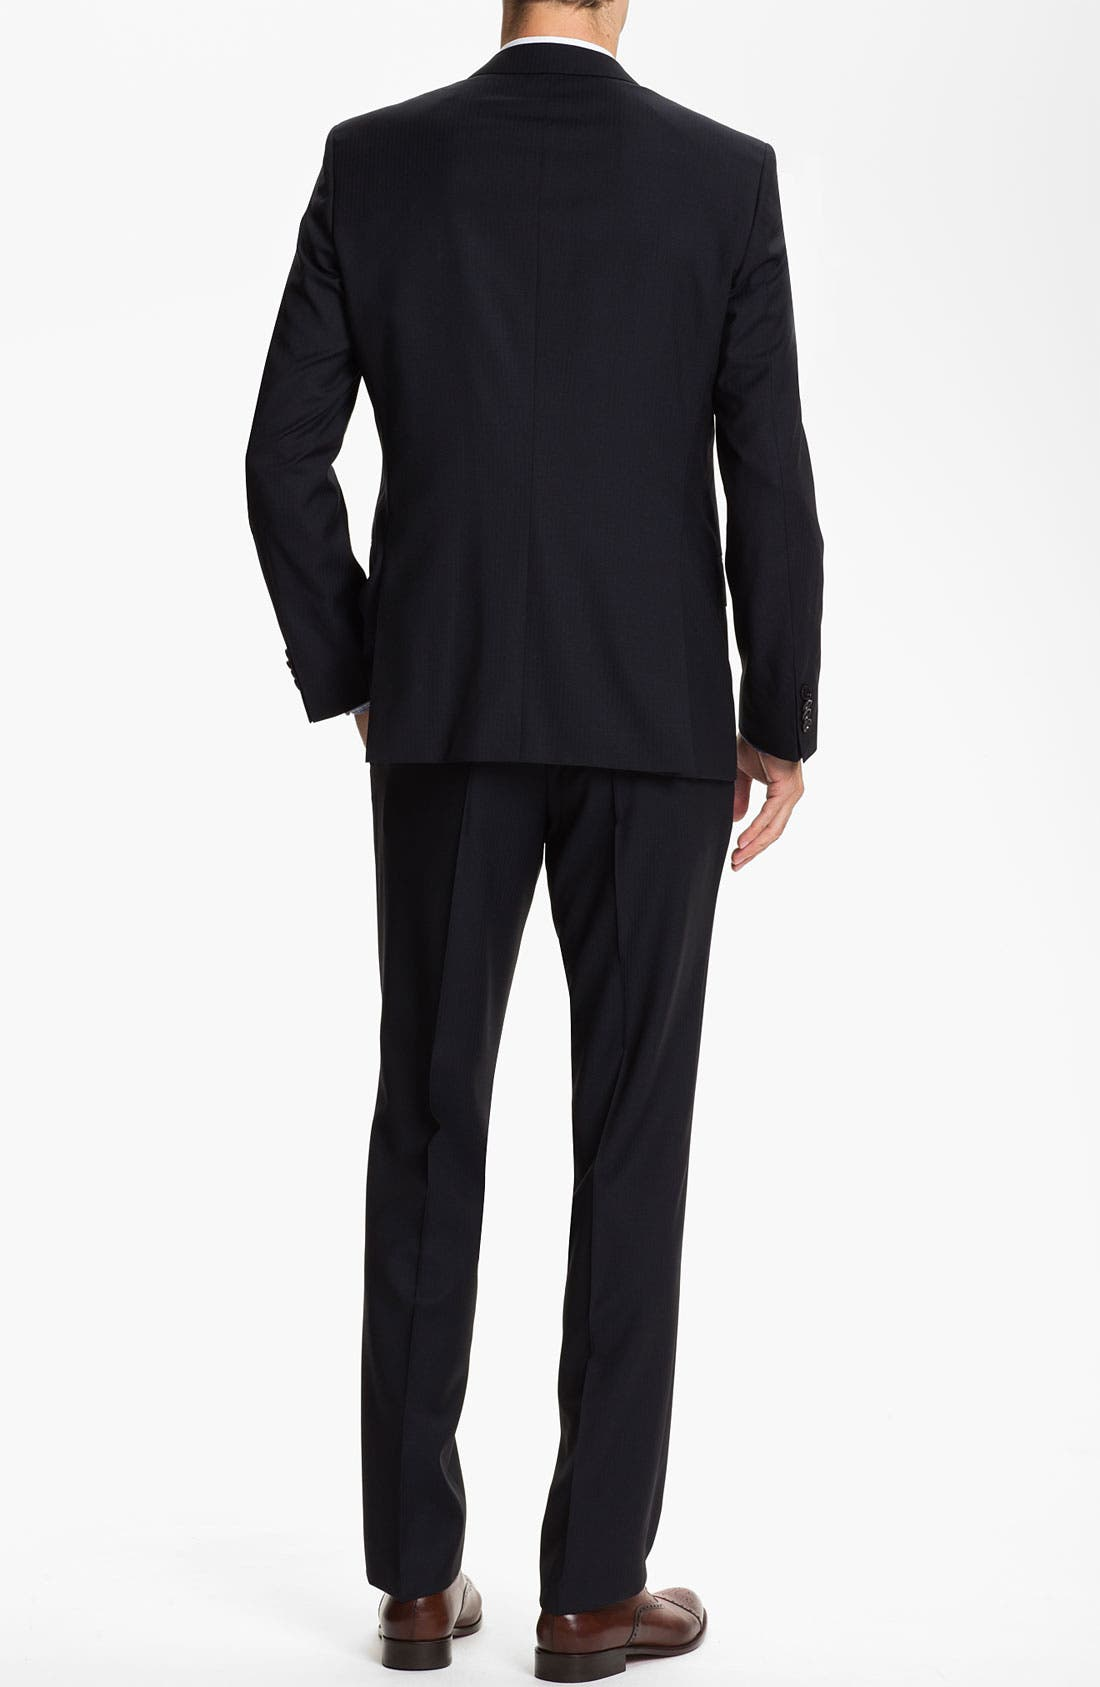 Alternate Image 3  - BOSS Black 'Hold/Genius' Trim Fit Three Piece Suit